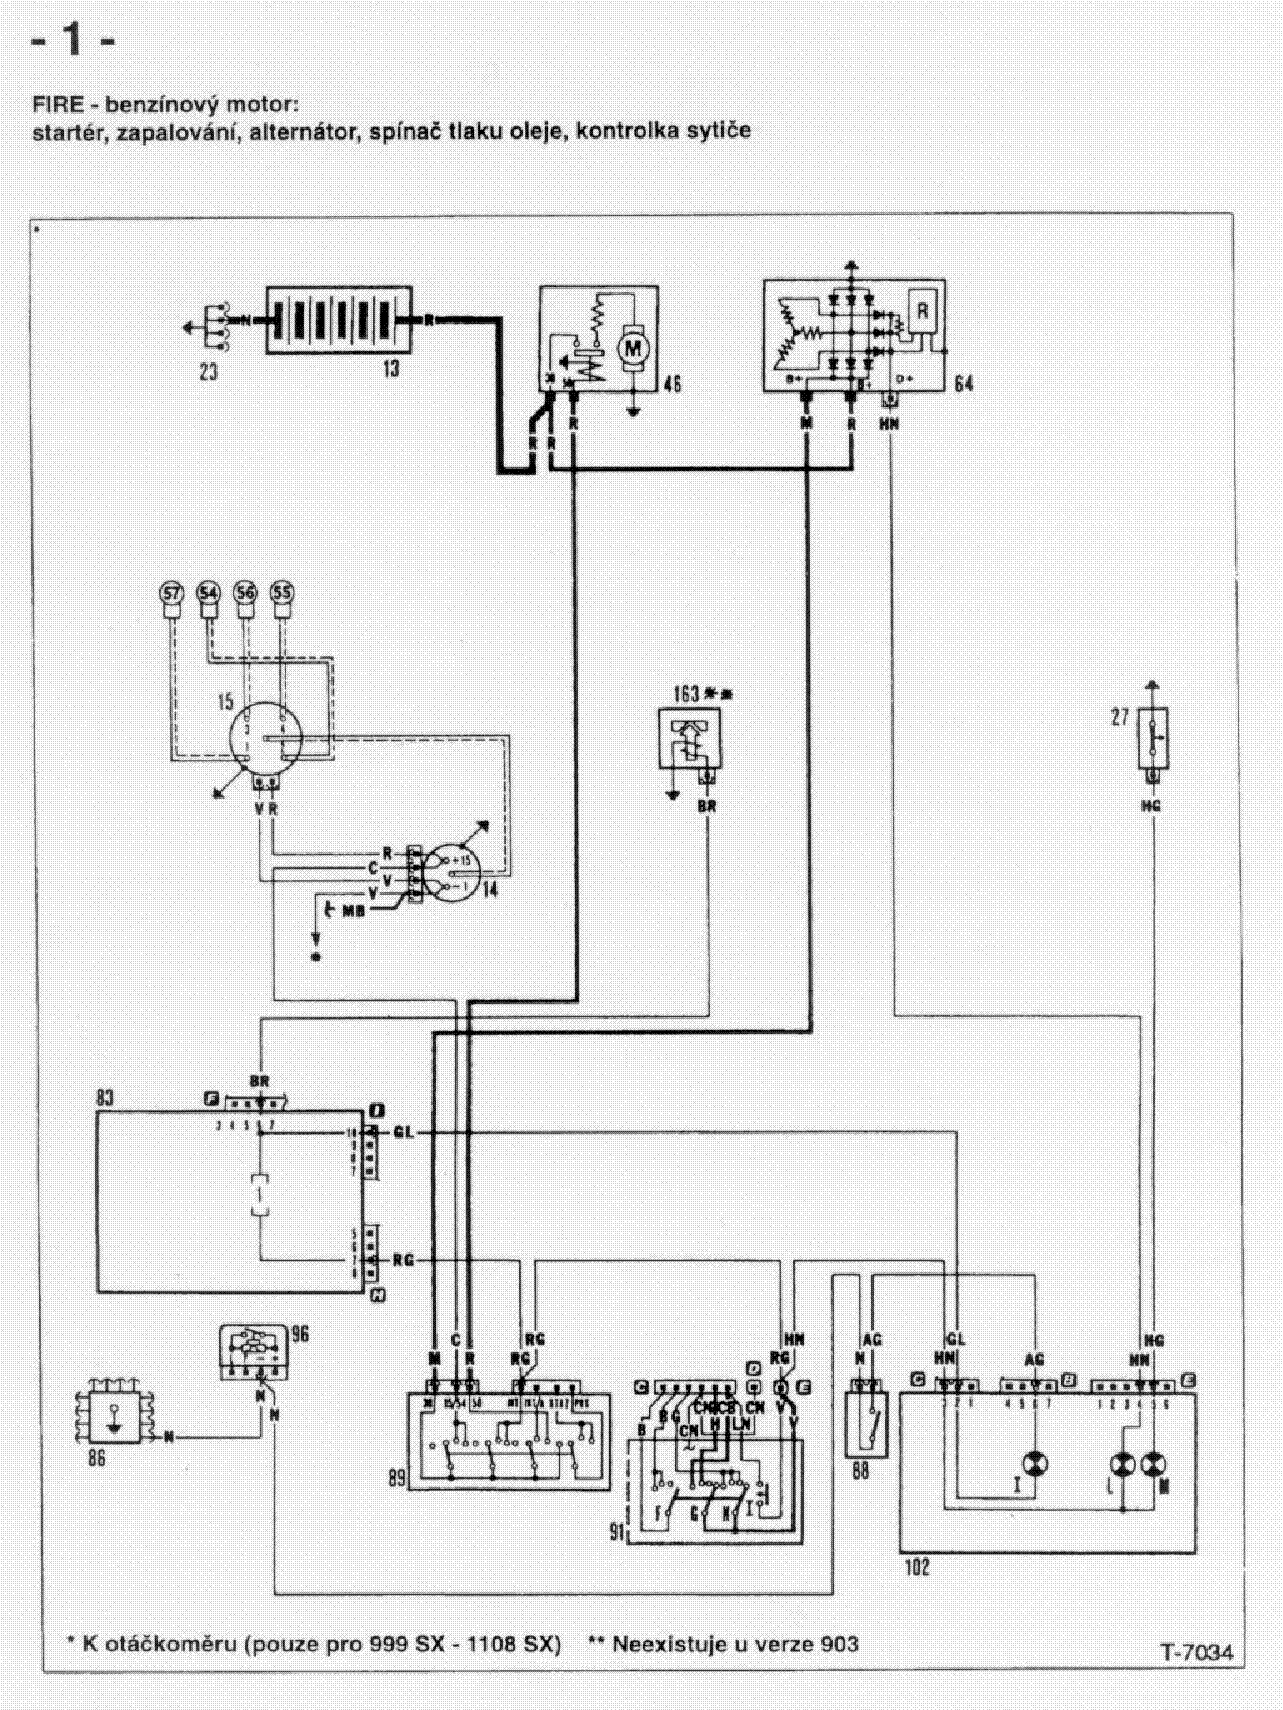 fire truck wiring diagram free picture schematic fiat uno wiring diagram service manual download  schematics  fiat uno wiring diagram service manual